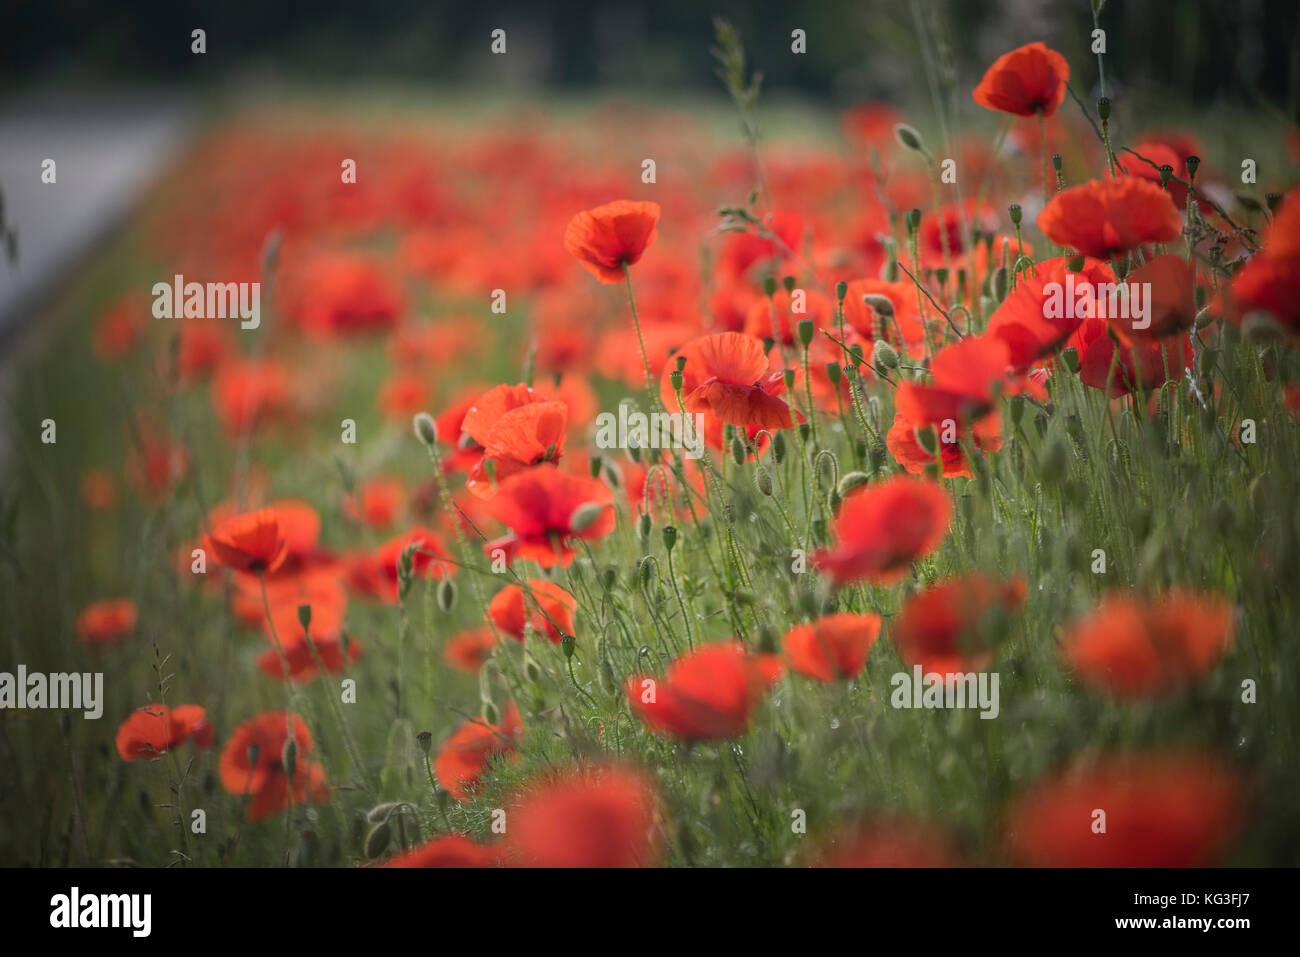 Wild field poppies growing in northern France - Stock Image